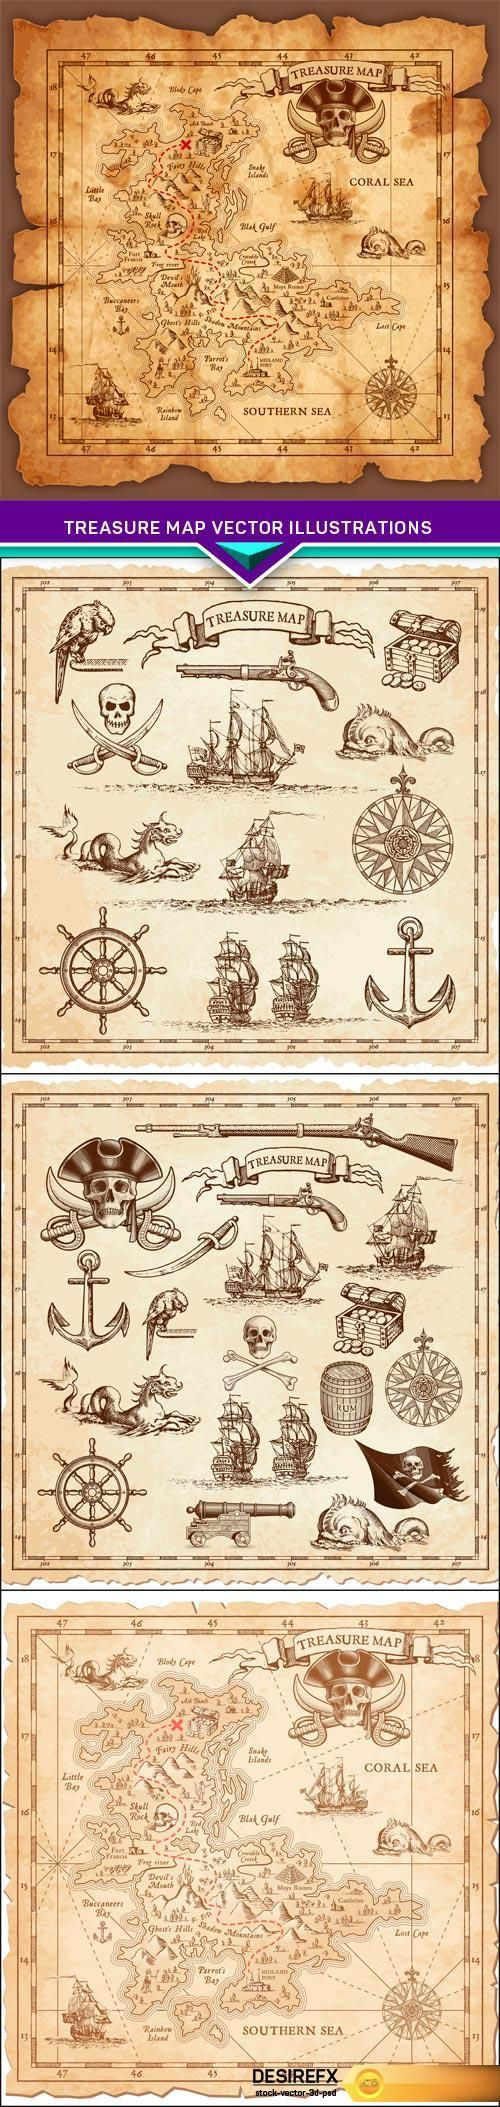 Find your Grapfix Desire With US http://www.desirefx.me/treasure-map-vector-illustrations-4x-eps/